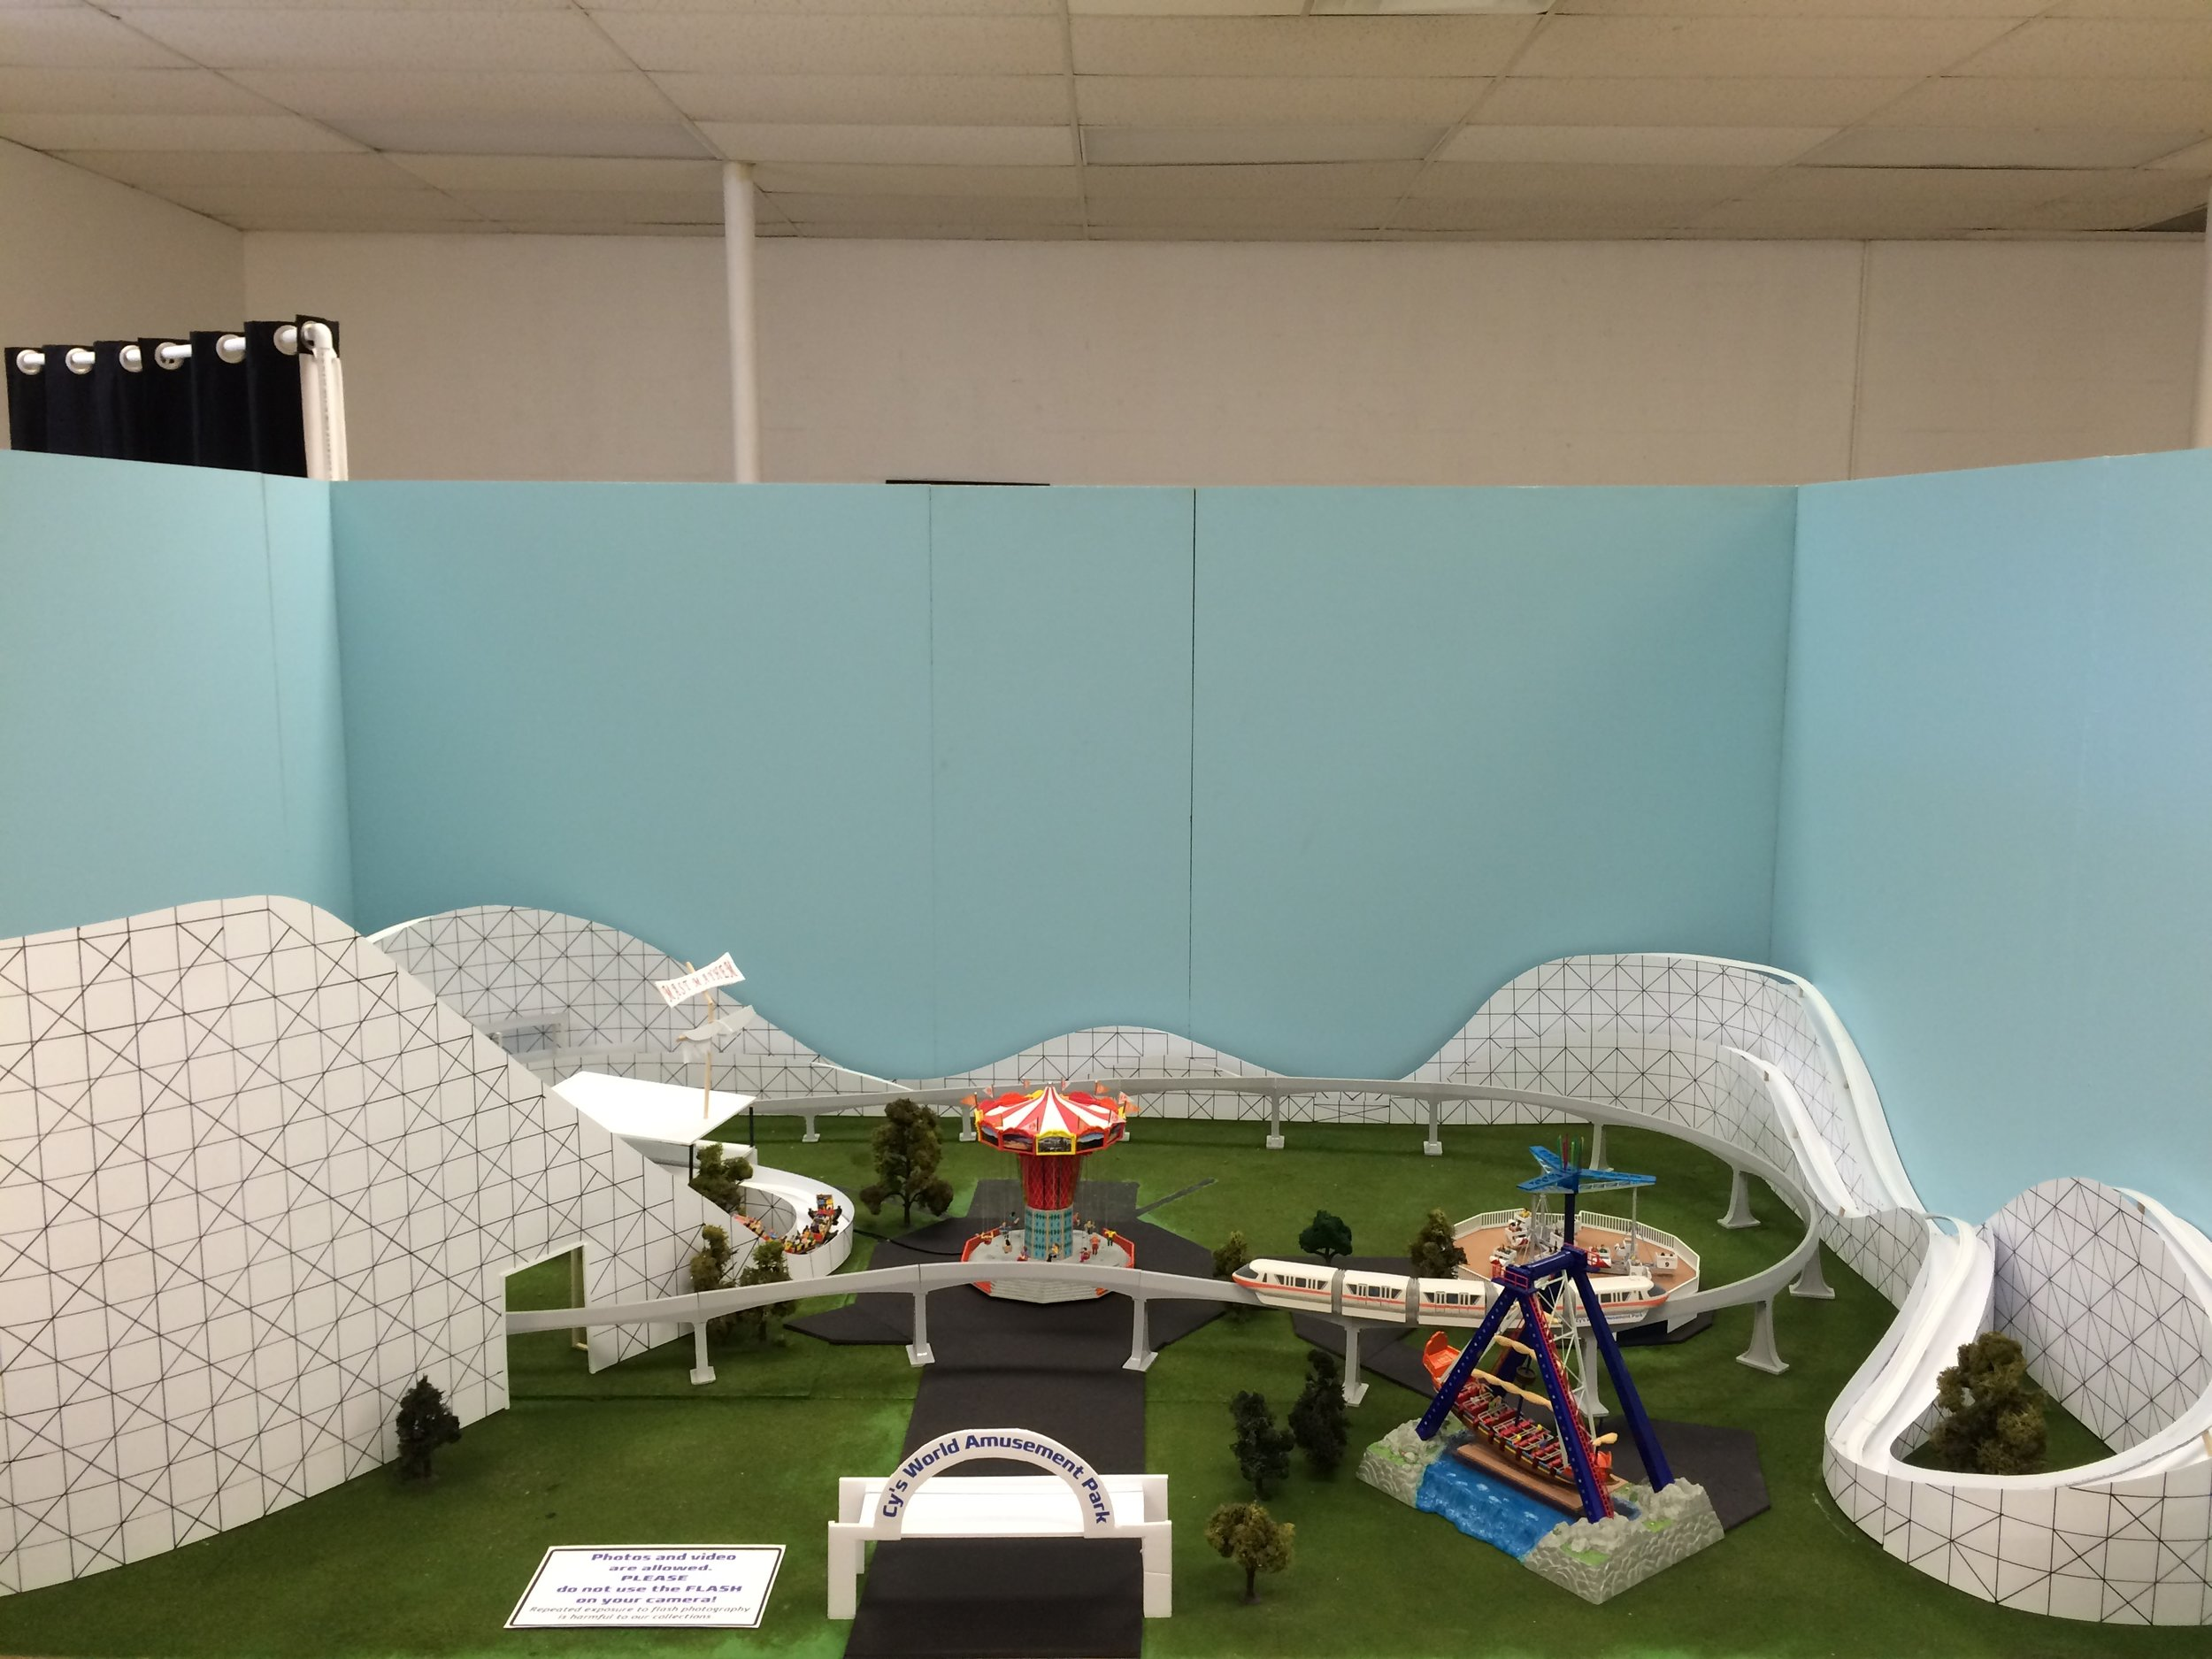 Exhibit: The Amusement Park (Cy's World) Cy's World as it originally appeared. The roller coaster was replaced about a month after opening with a more realistic looking structure.